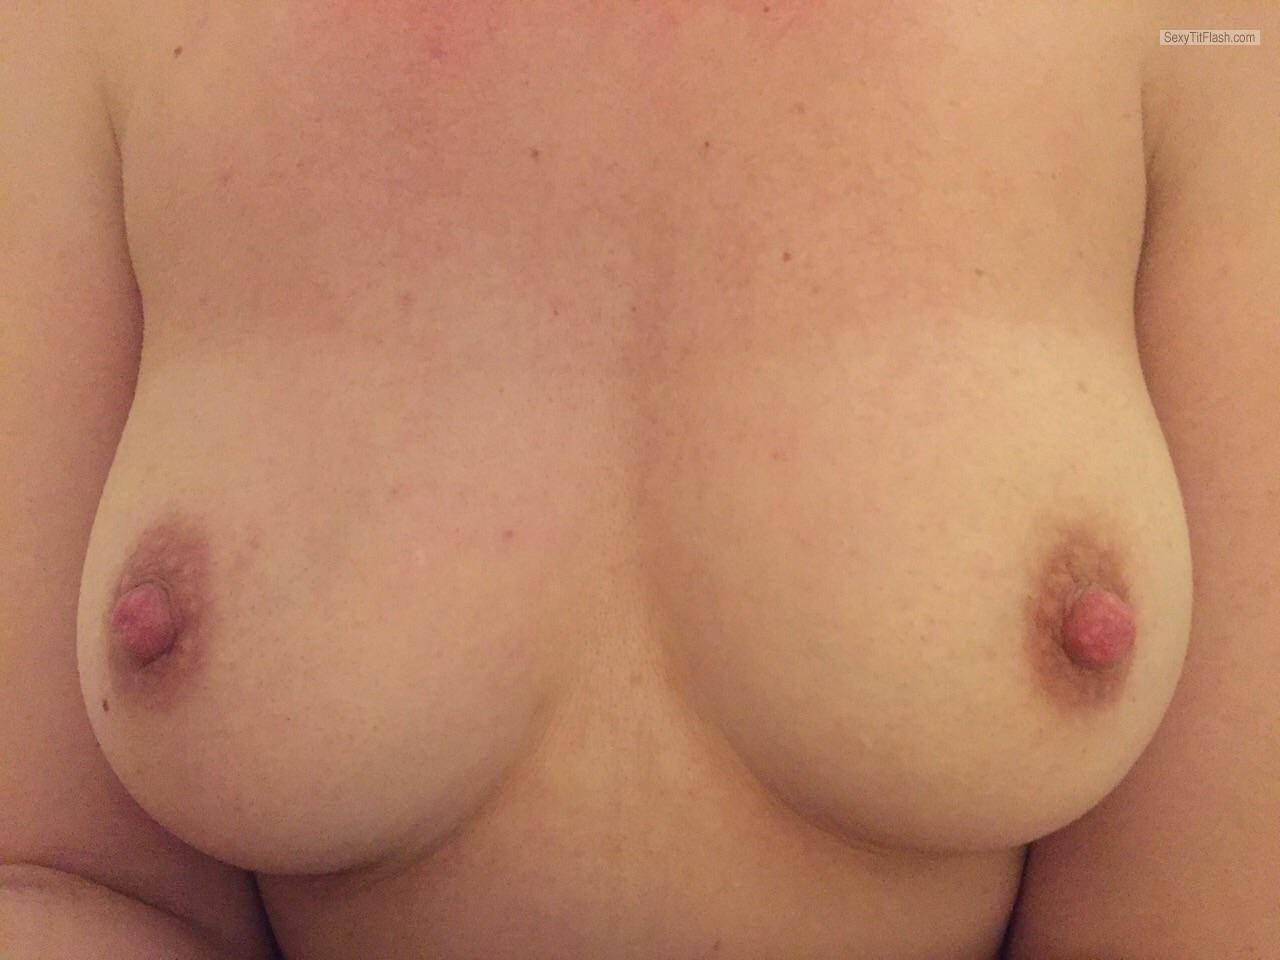 Tit Flash: My Medium Tits (Selfie) - BoggaNops from United Kingdom